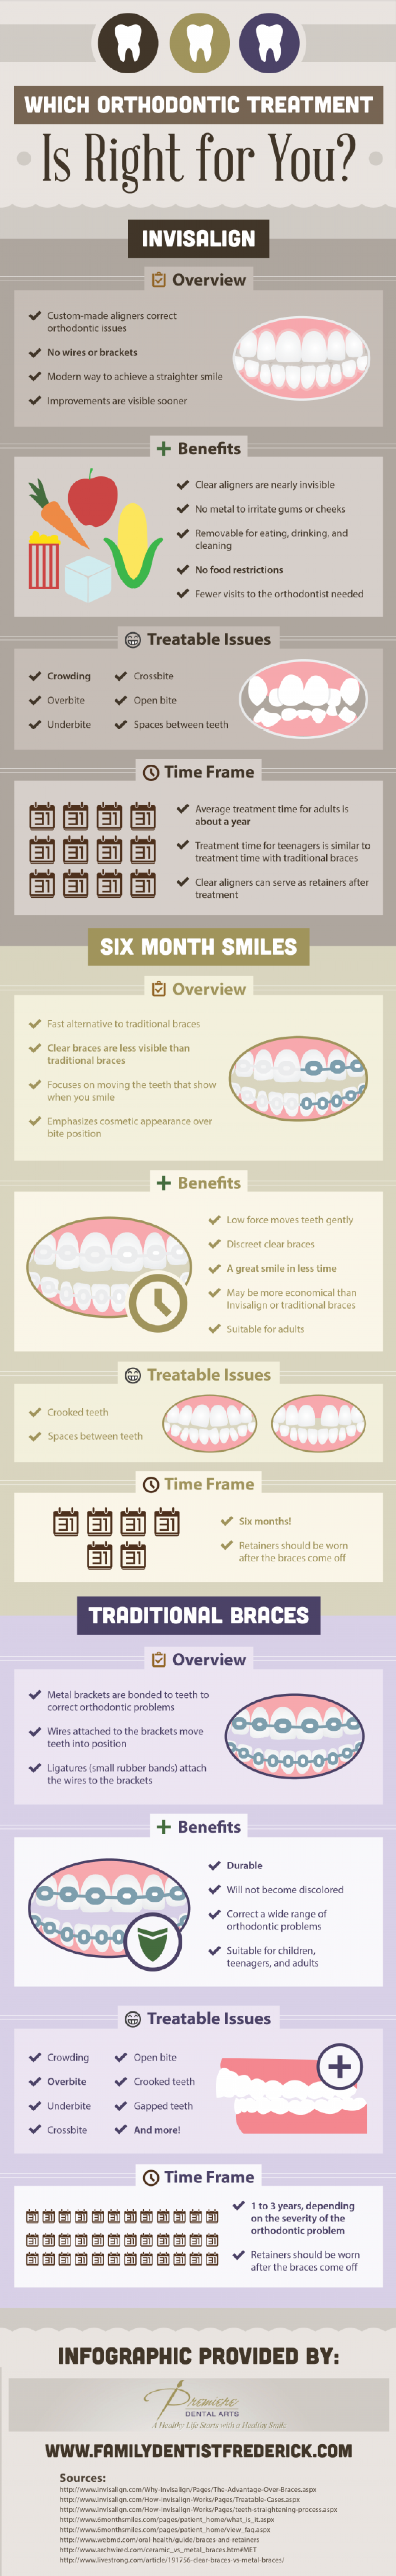 Which Orthodontic Treatment Is Right for You? Infographic